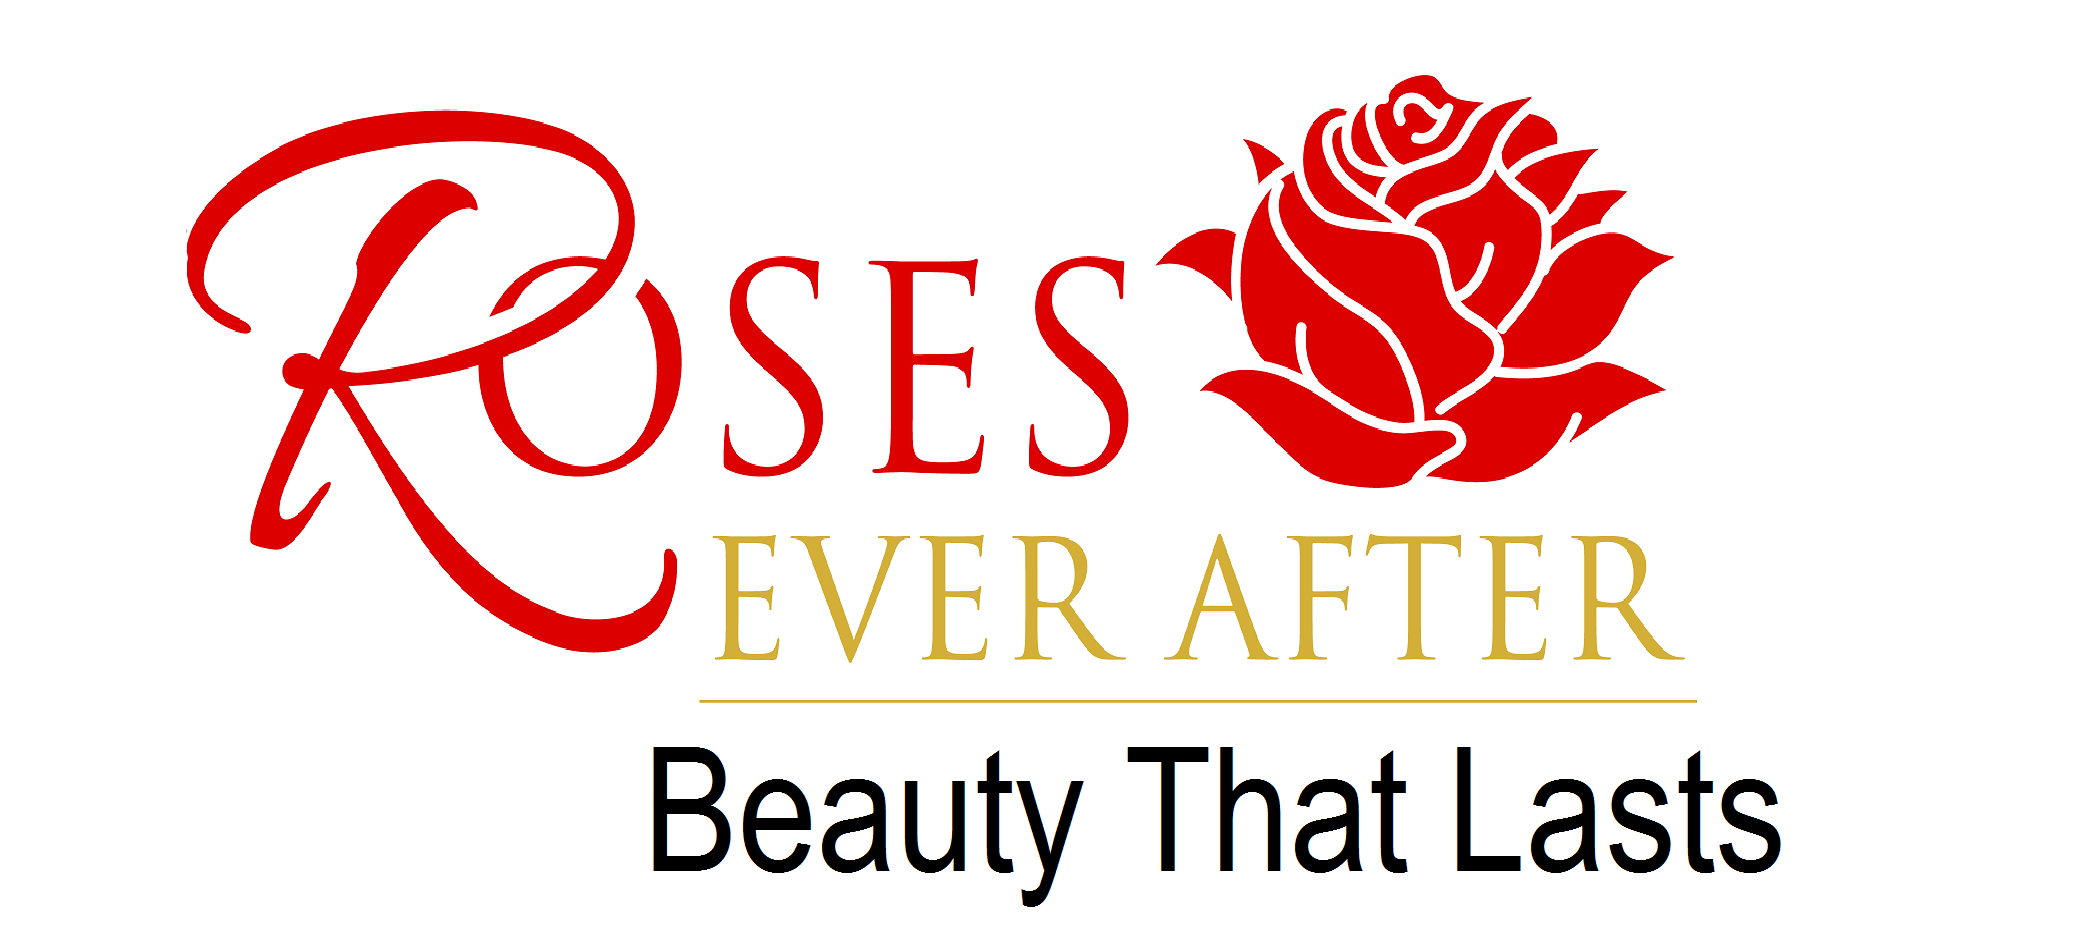 roses ever after